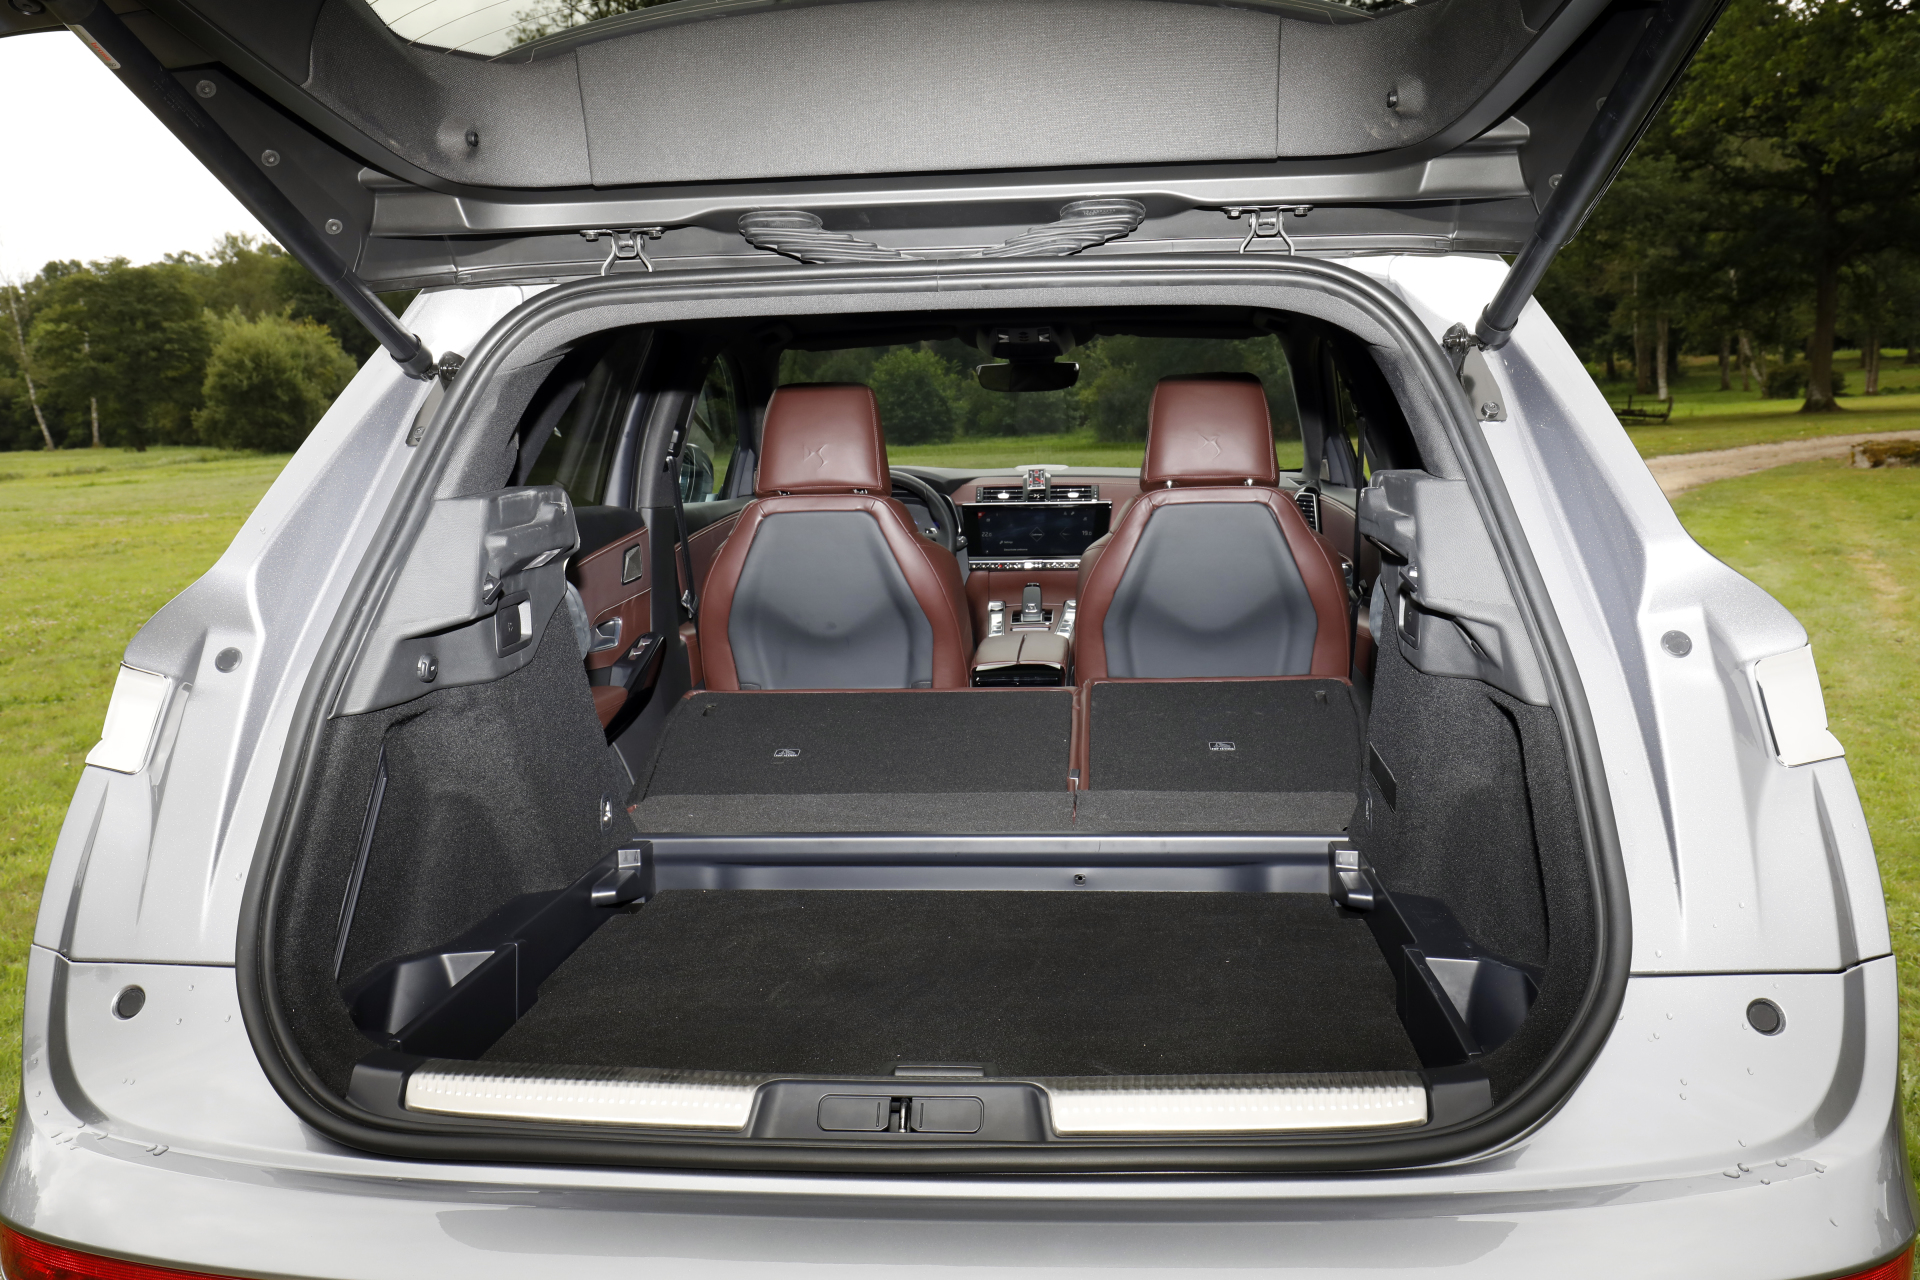 exclusif le ds7 crossback affronte le volvo xc60 2017. Black Bedroom Furniture Sets. Home Design Ideas